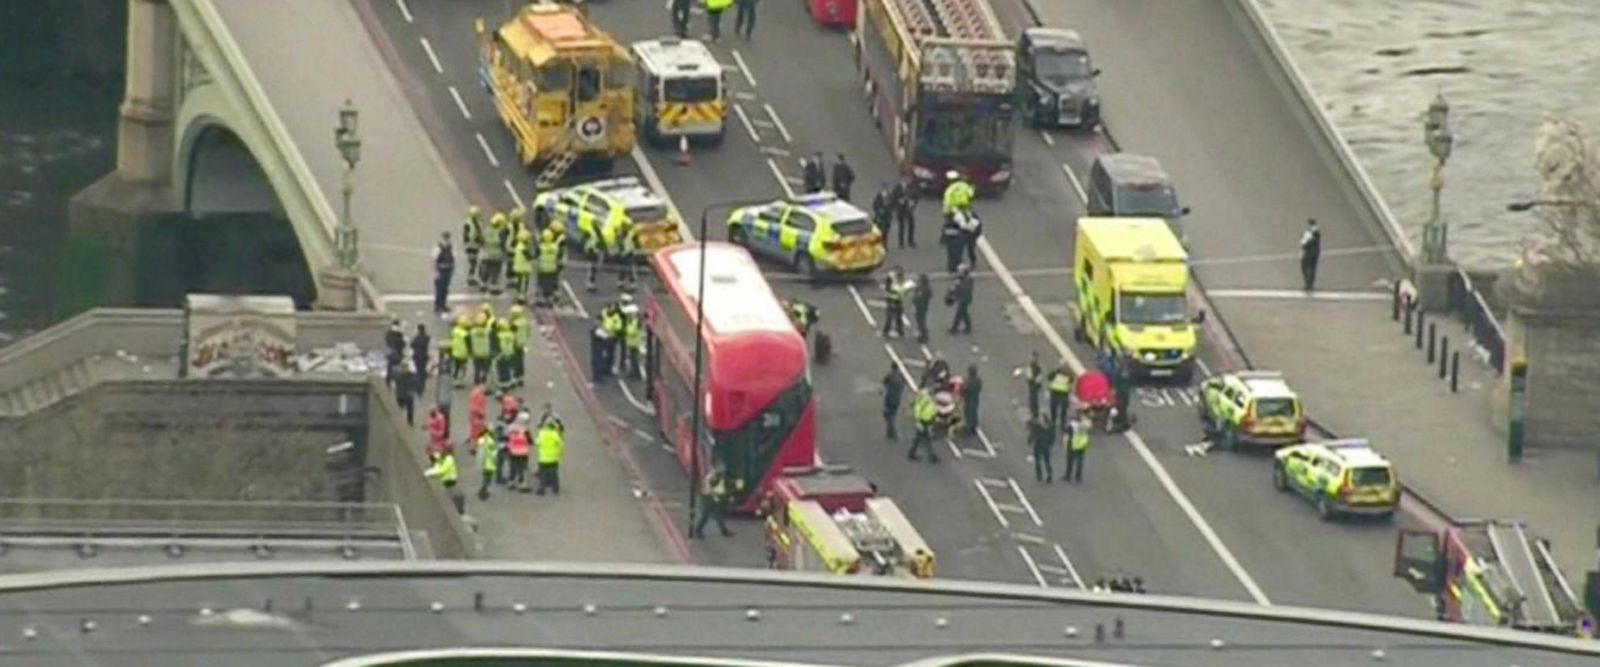 VIDEO: Terror investigation underway in London